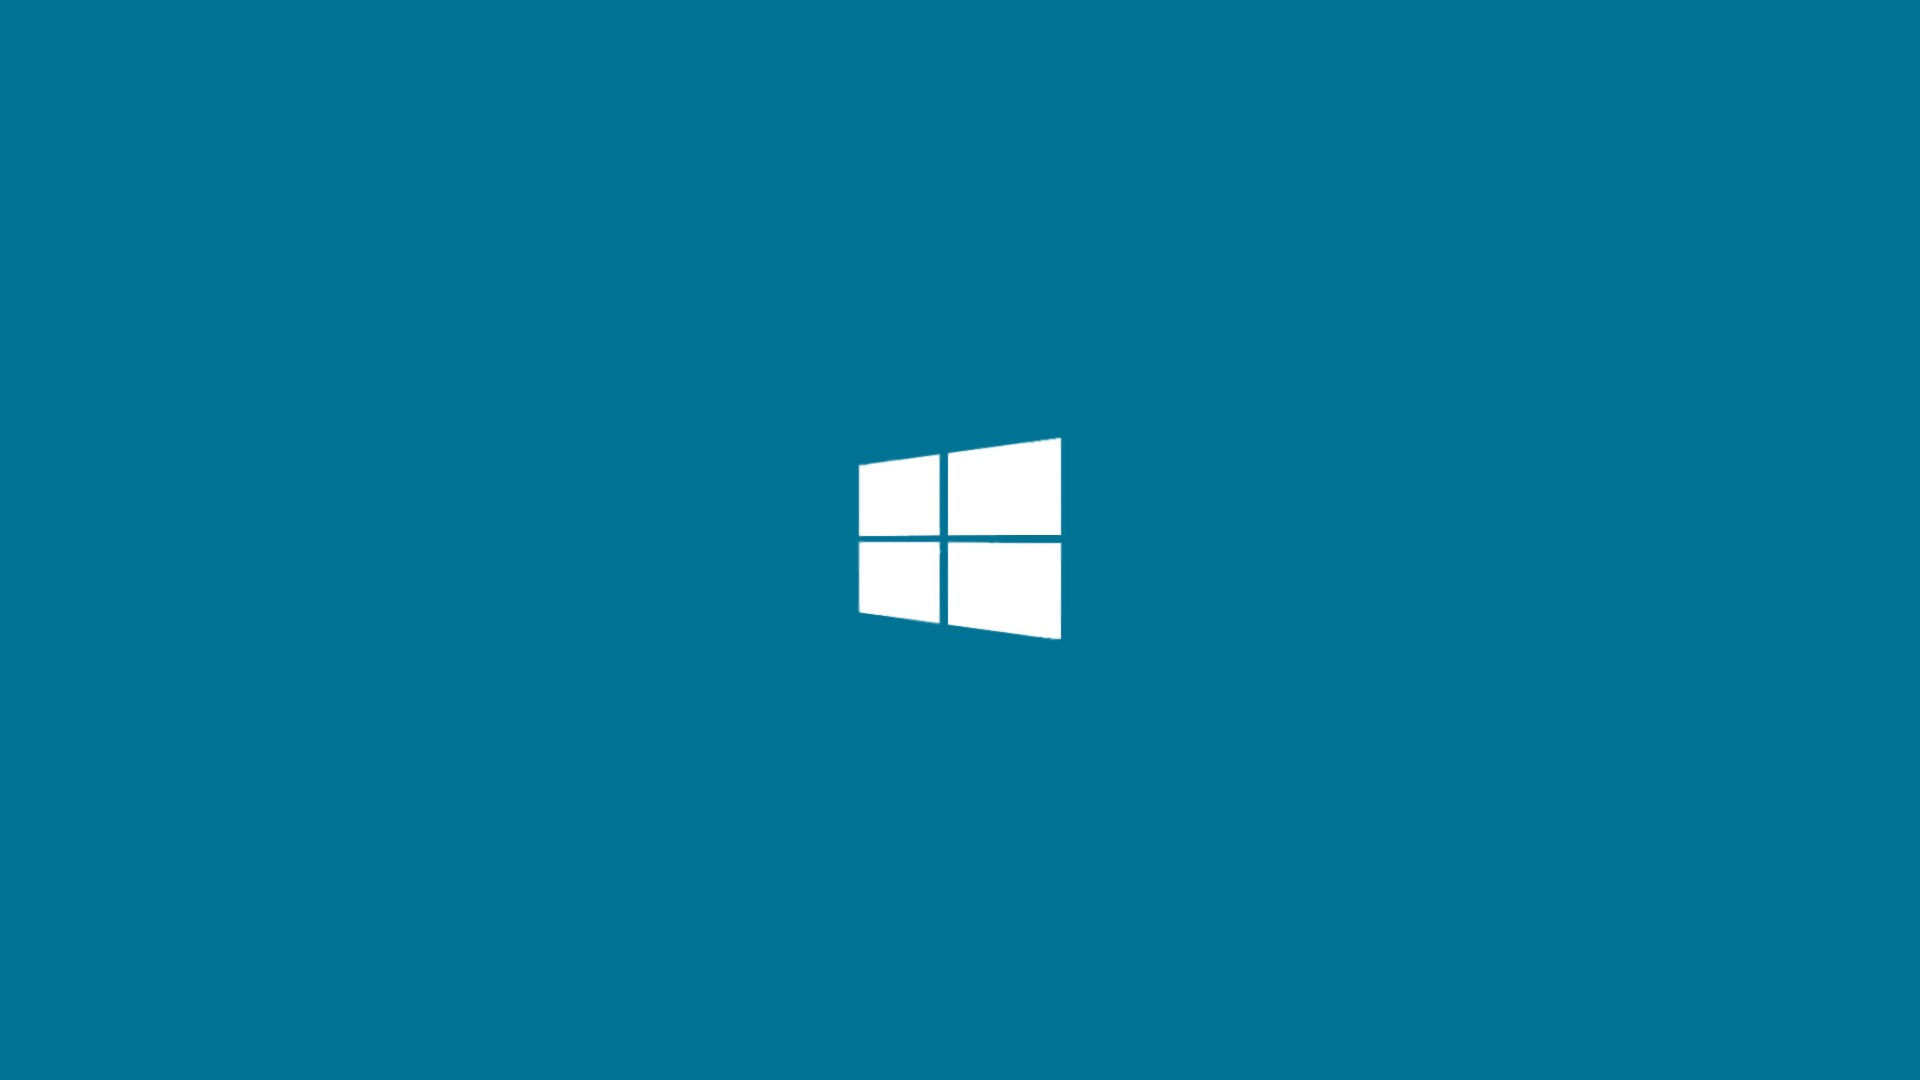 Microsoft wallpaper download free awesome high for Microsoft windows